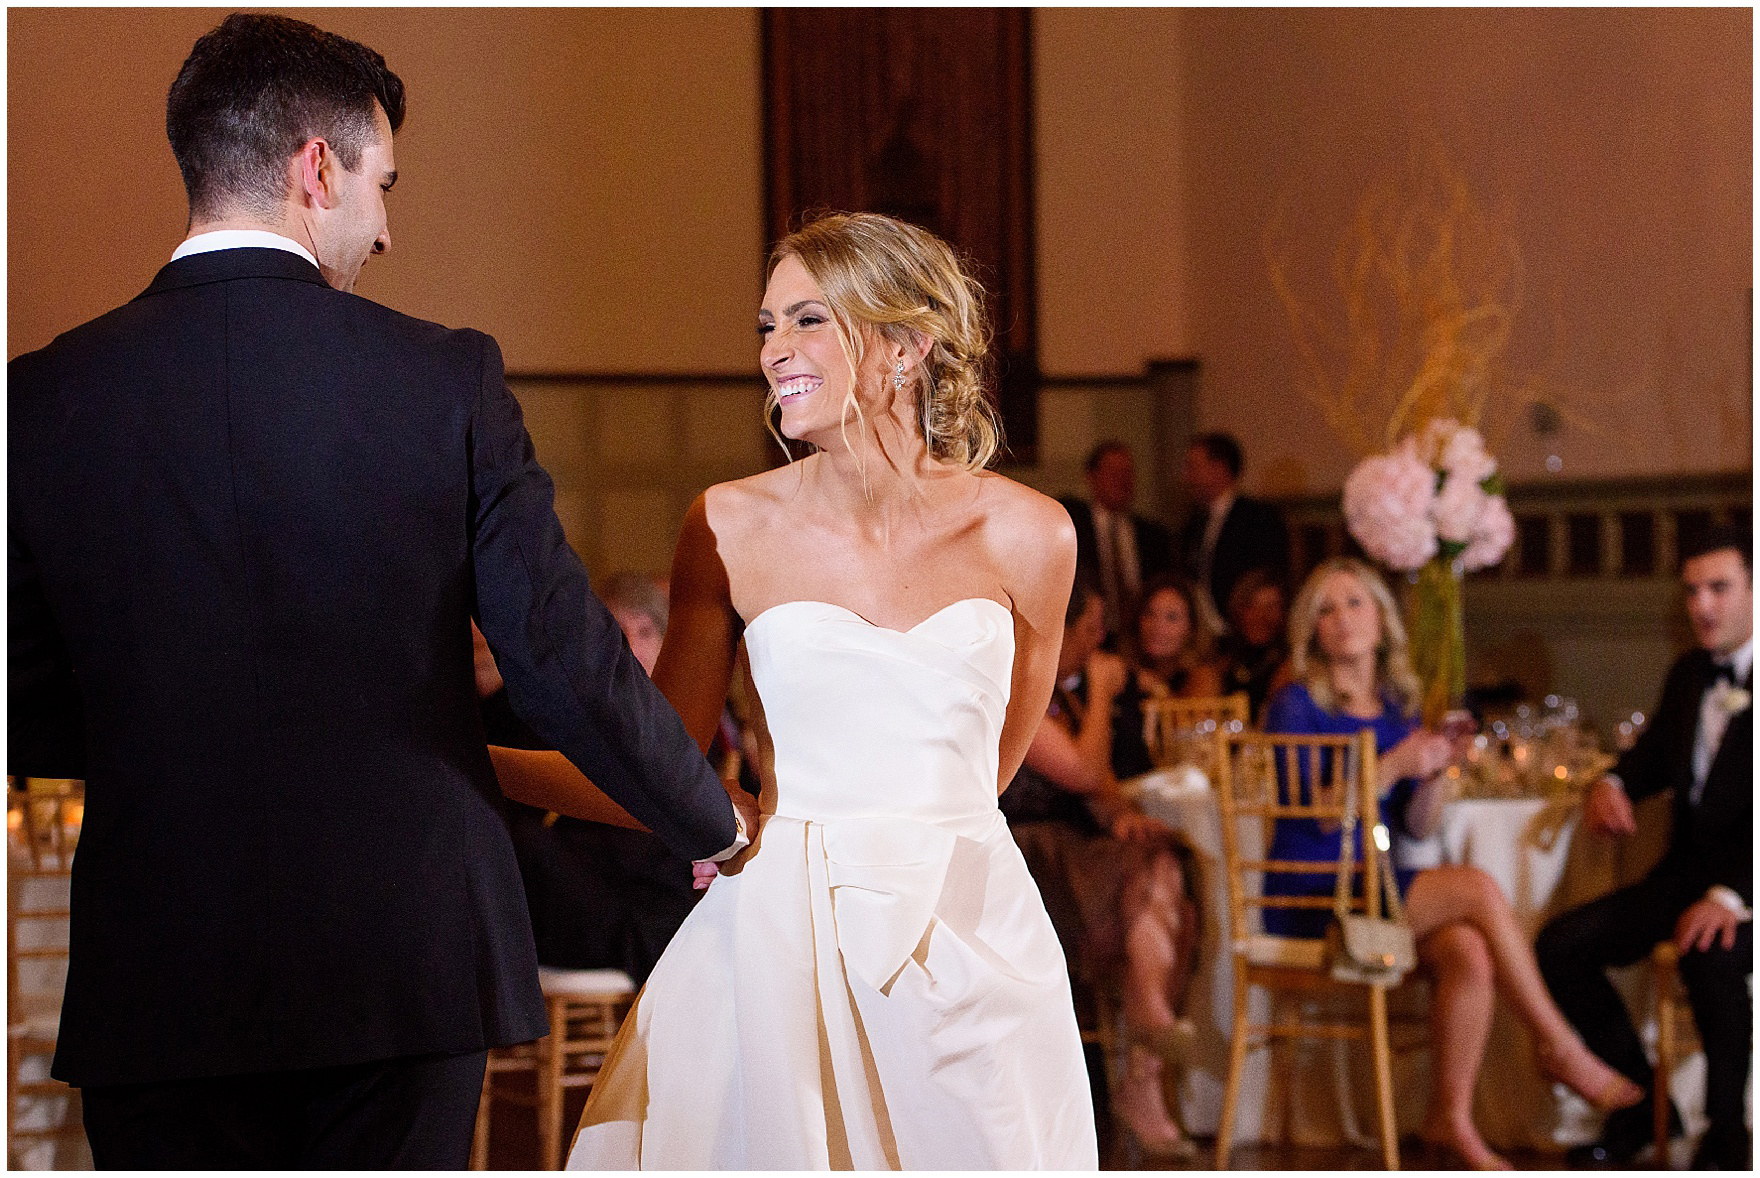 The bride and groom laugh during their first dance during a St. Clement Germania Place Chicago wedding.